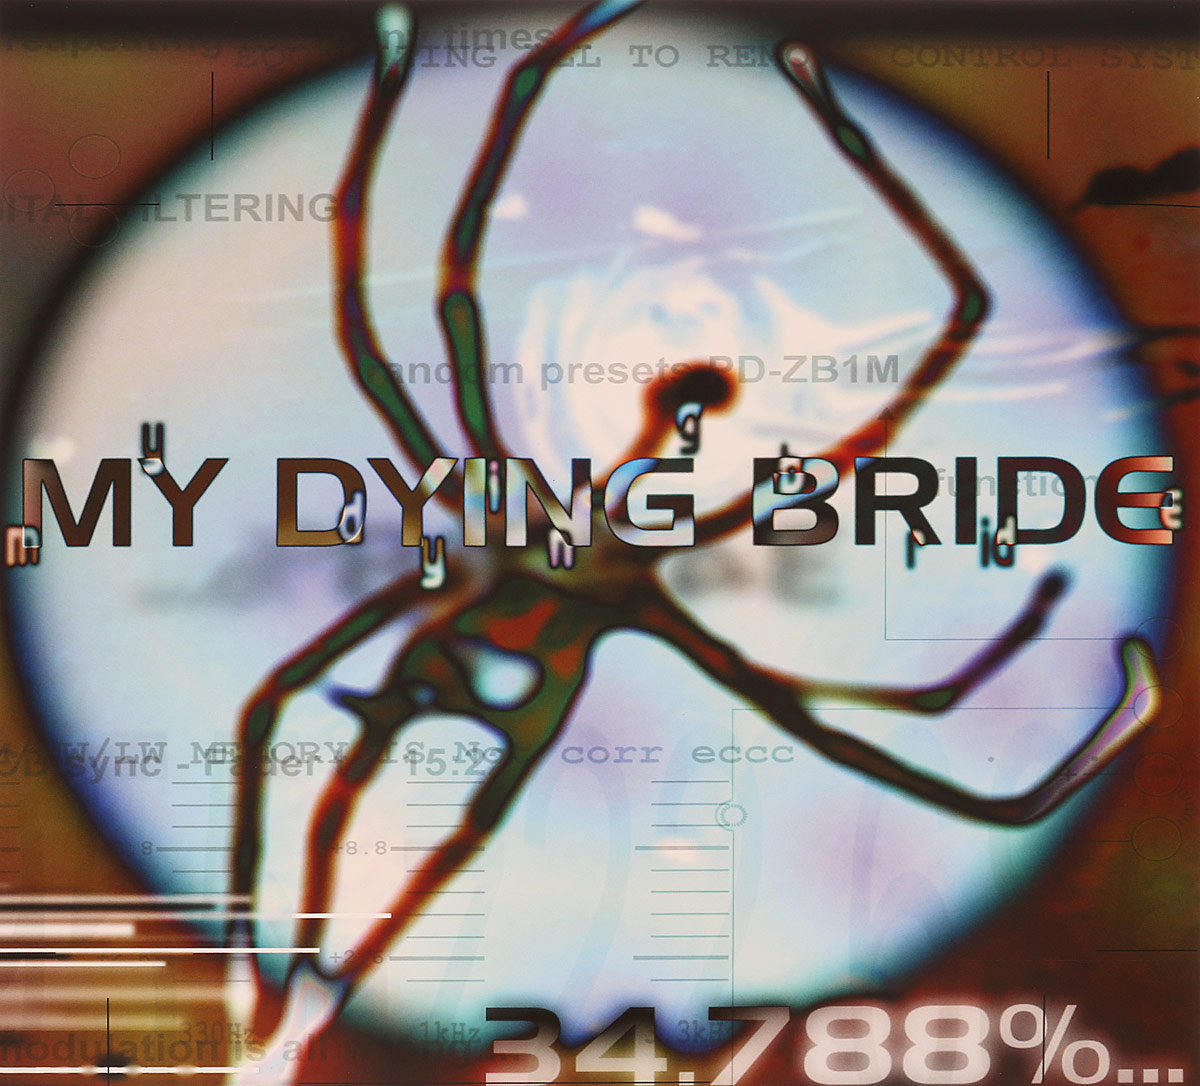 My Dying Bride My Dying Bride. 34.788% Complete (2 LP) my dying bride my dying bride a map of all our failures 2 lp